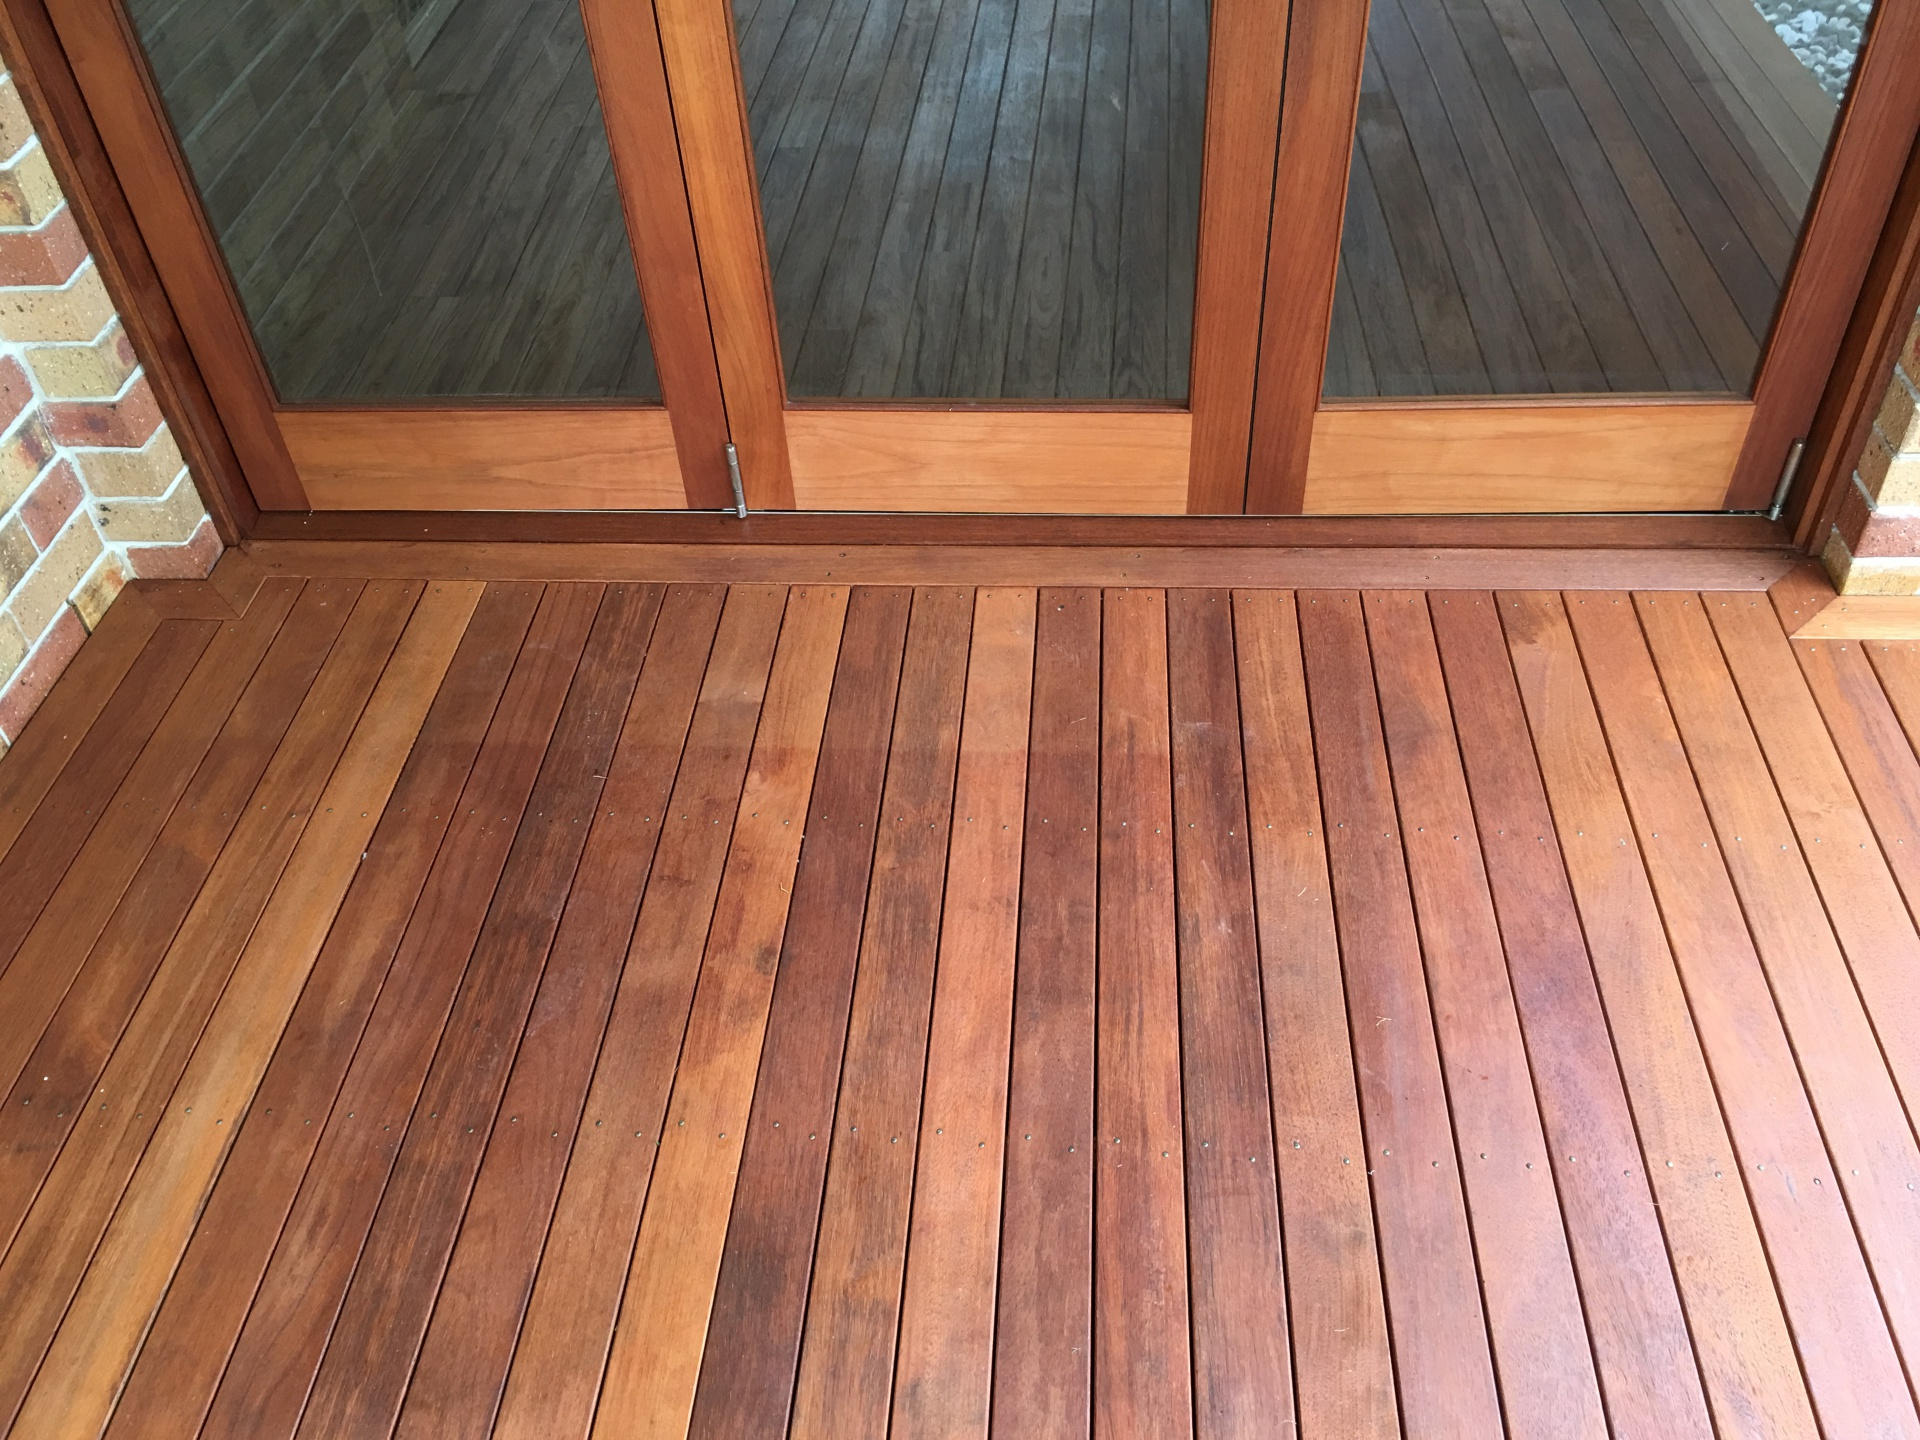 timber decks, decking, decks brisbane